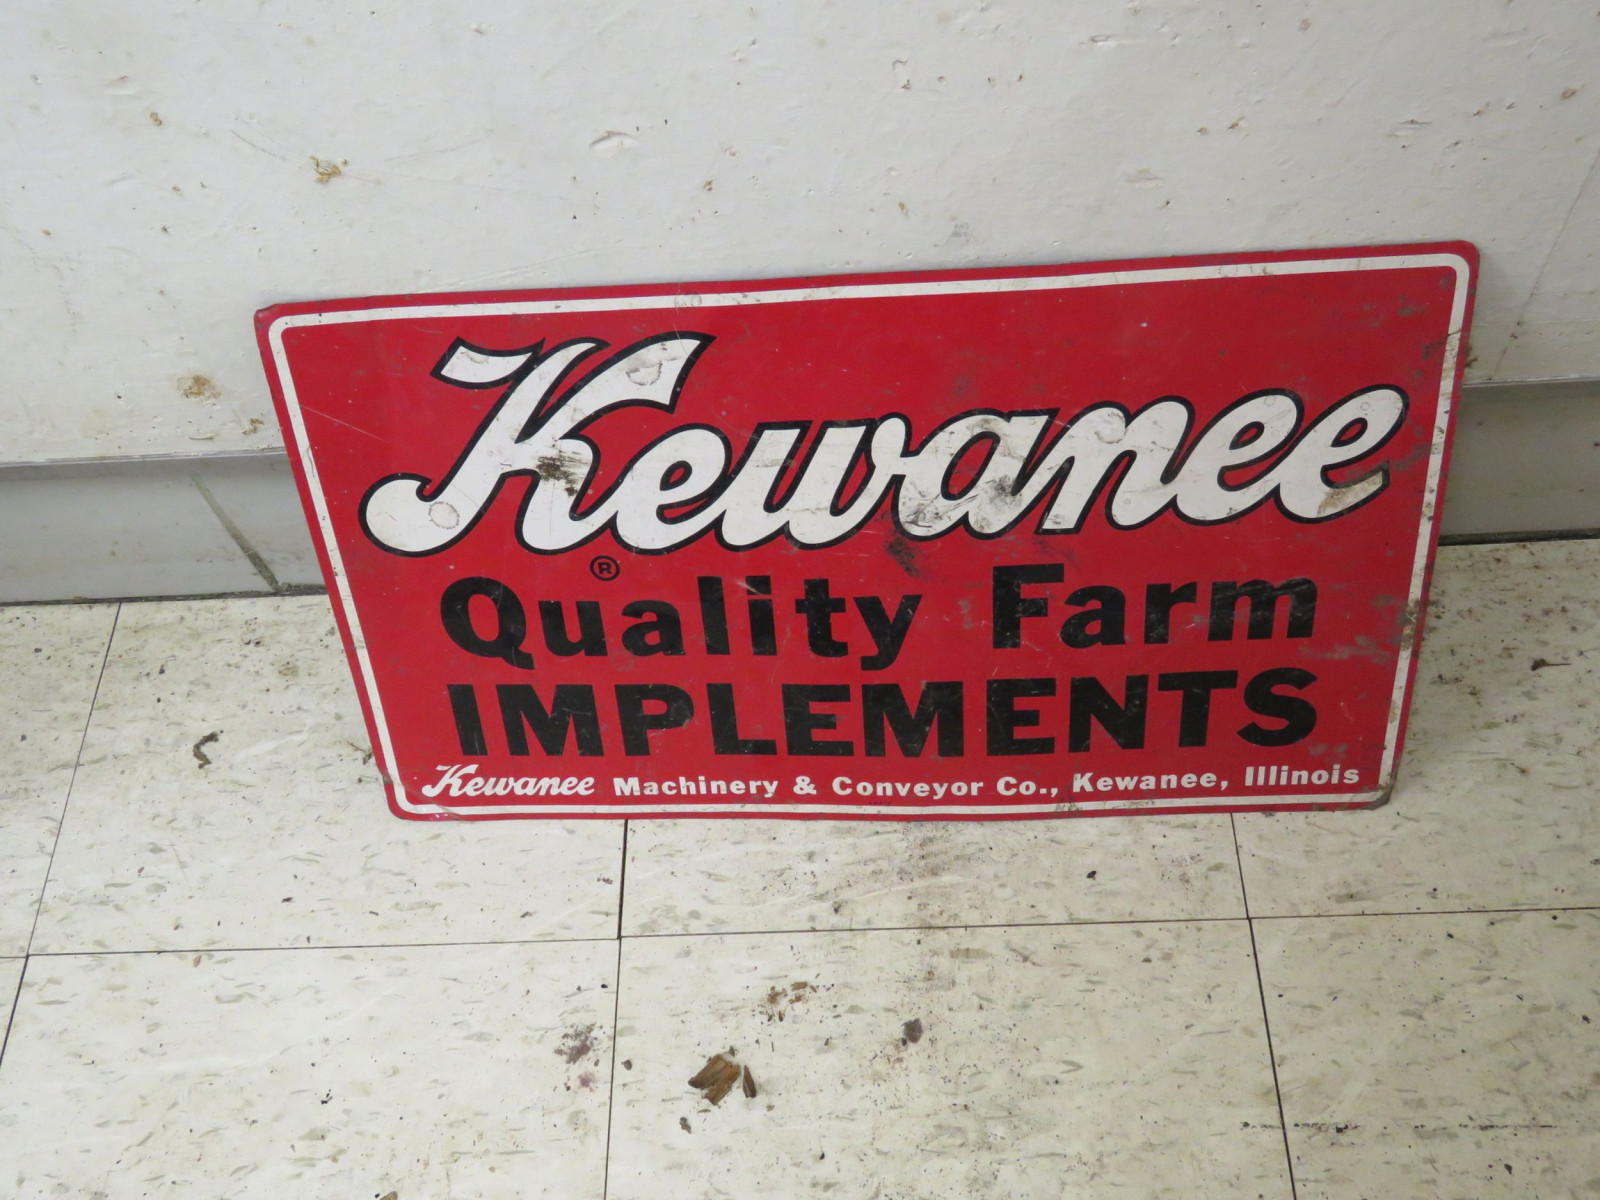 Kewanee Single Sided Pressed Tin Sign 12x21 inches - Image 1